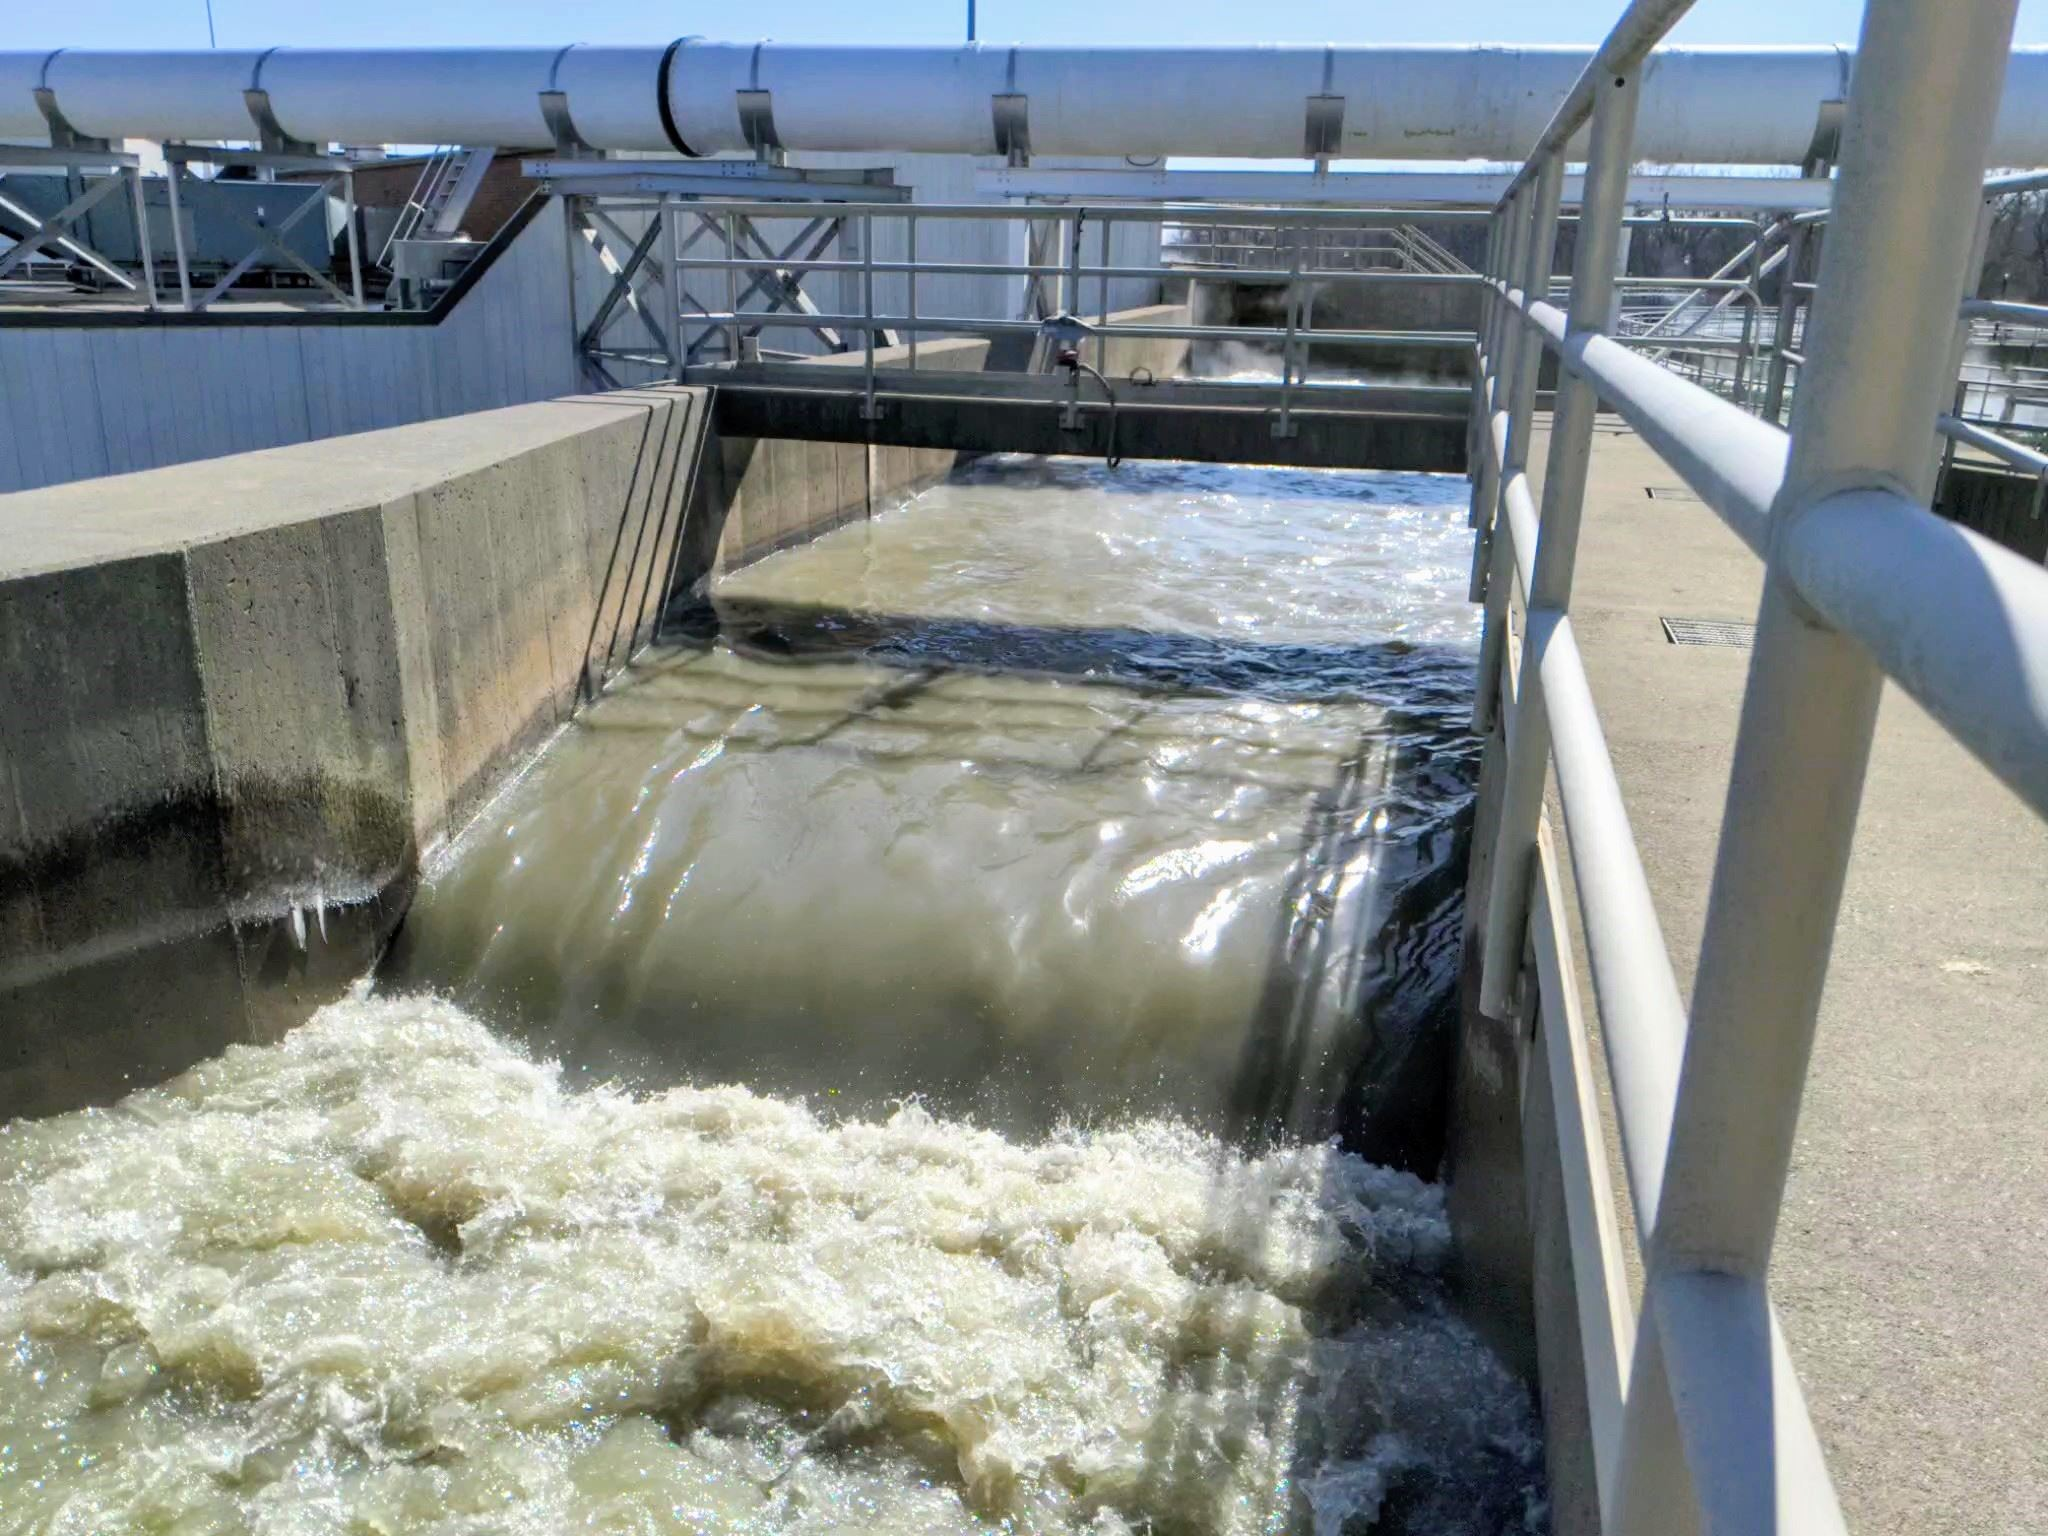 Wastewater flowing through flume